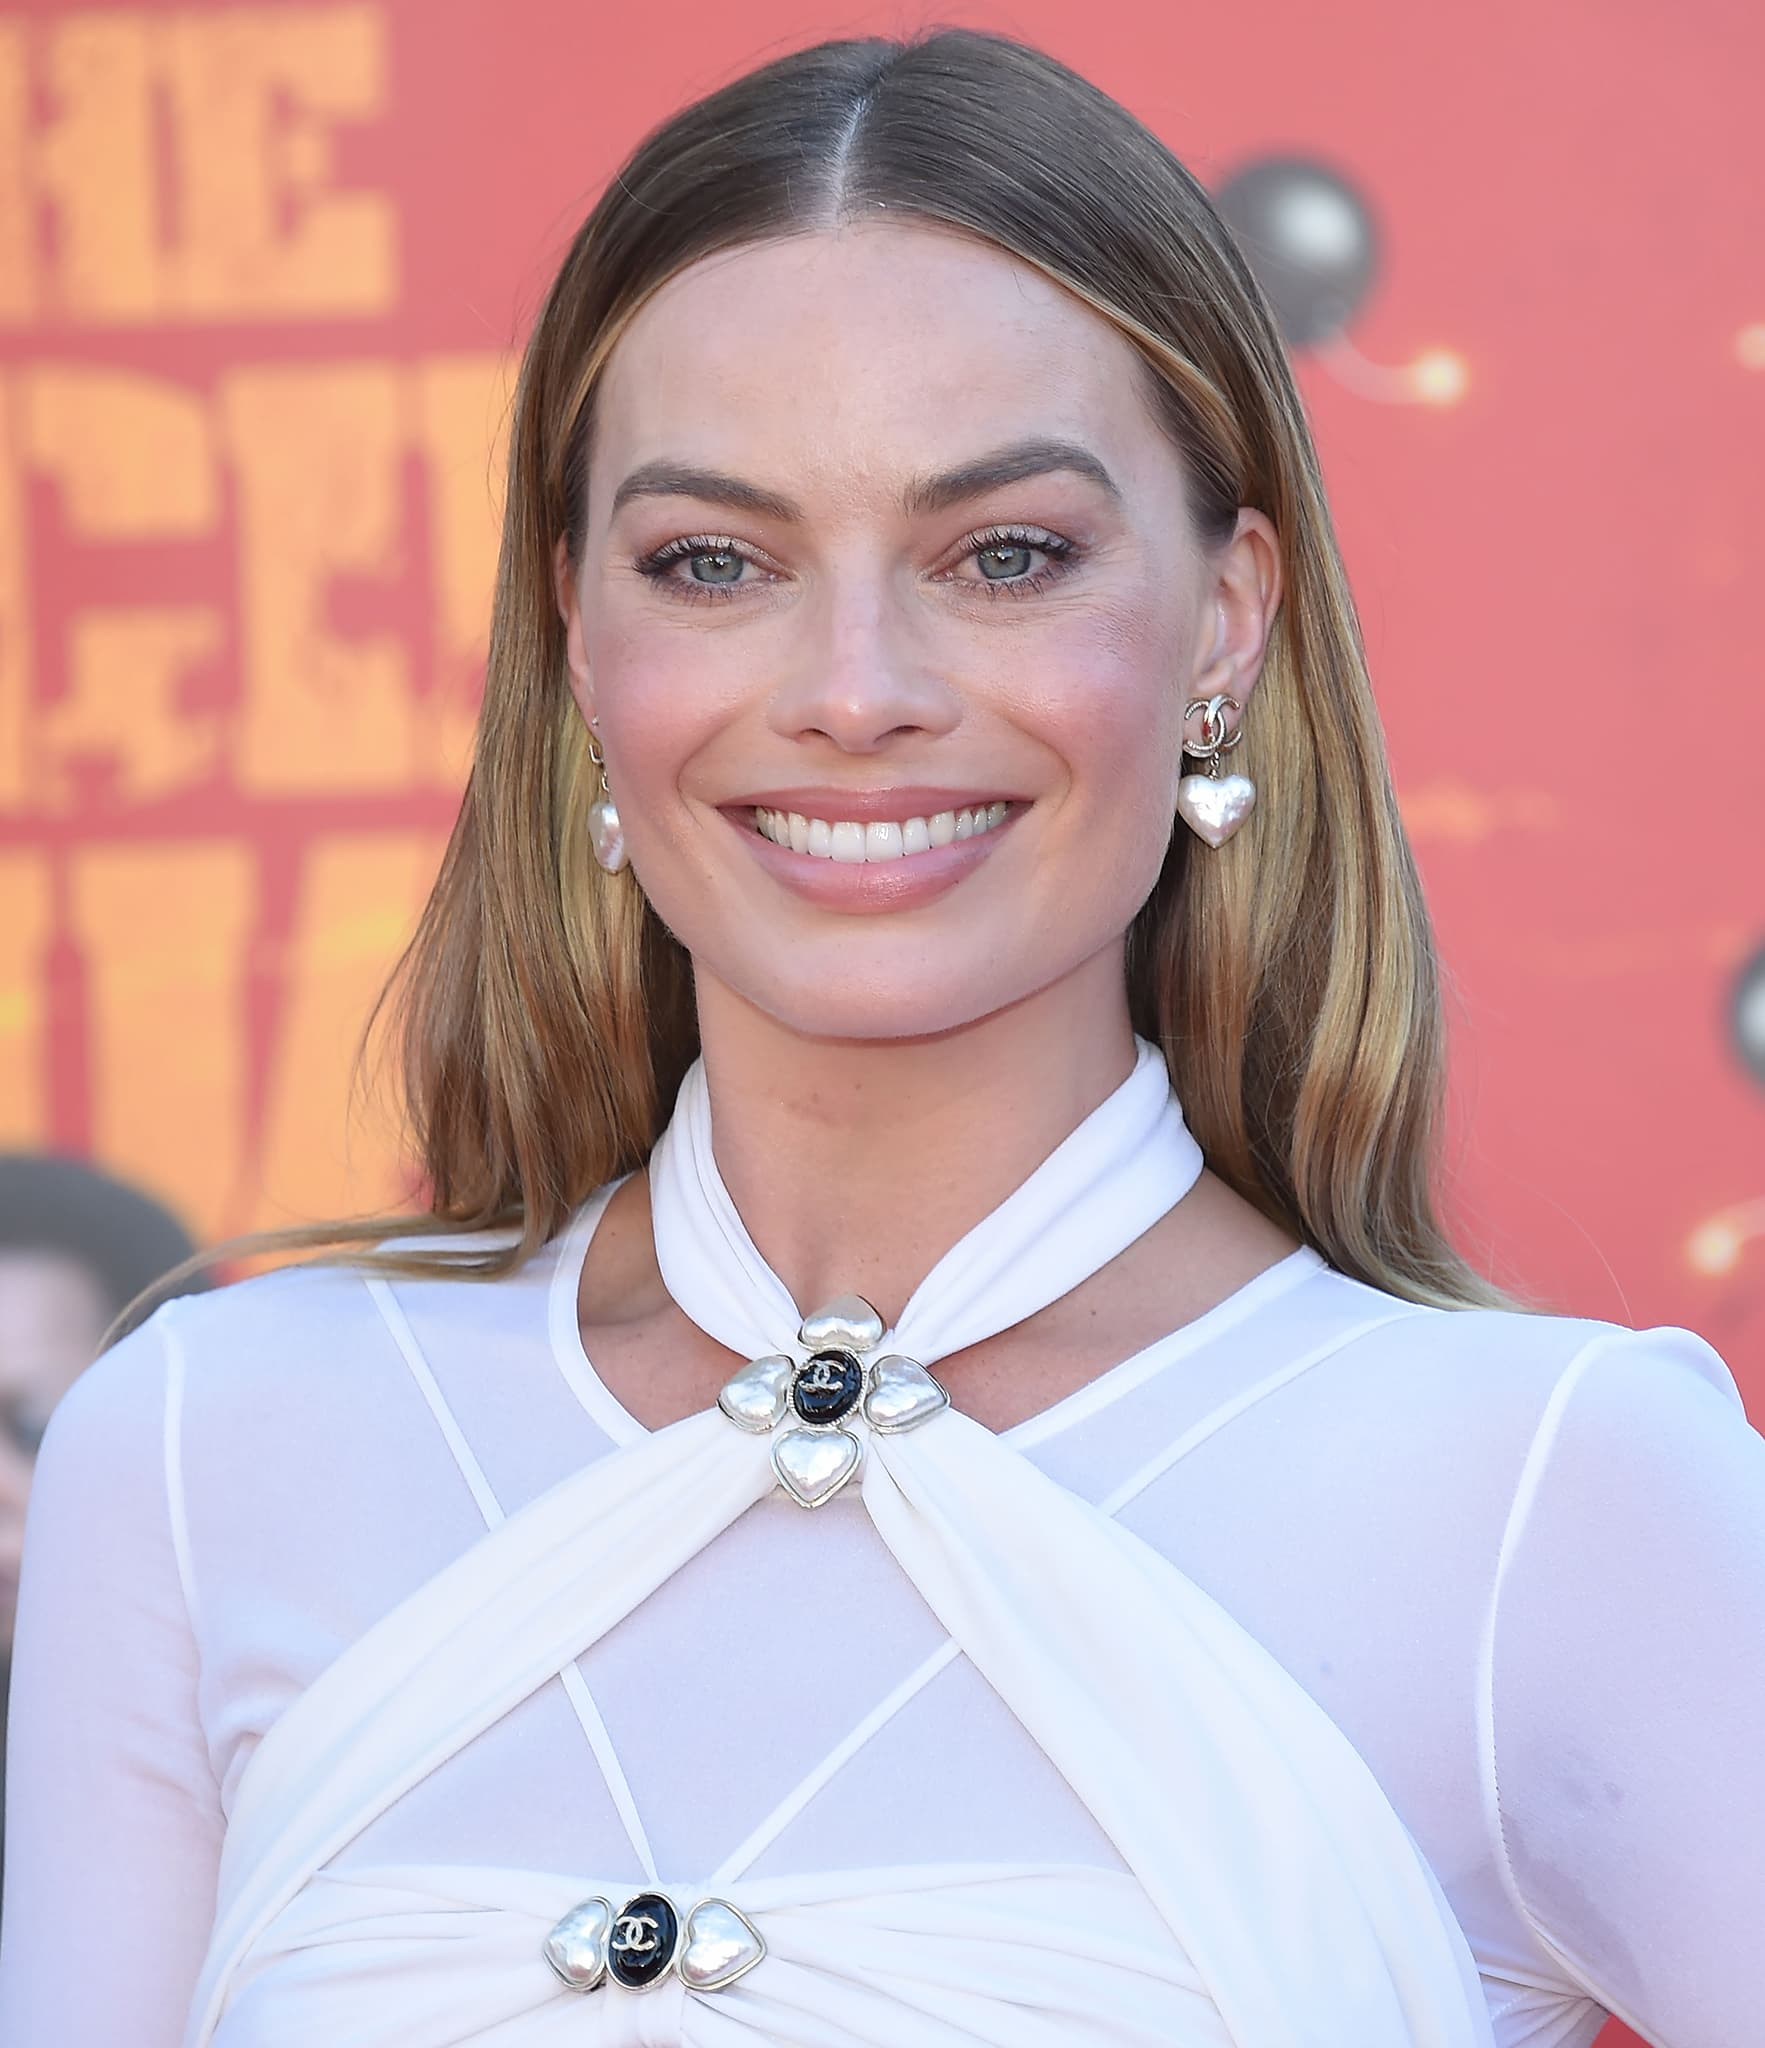 Margot Robbie wears her signature soft makeup look and styles her hair straight with a center parting